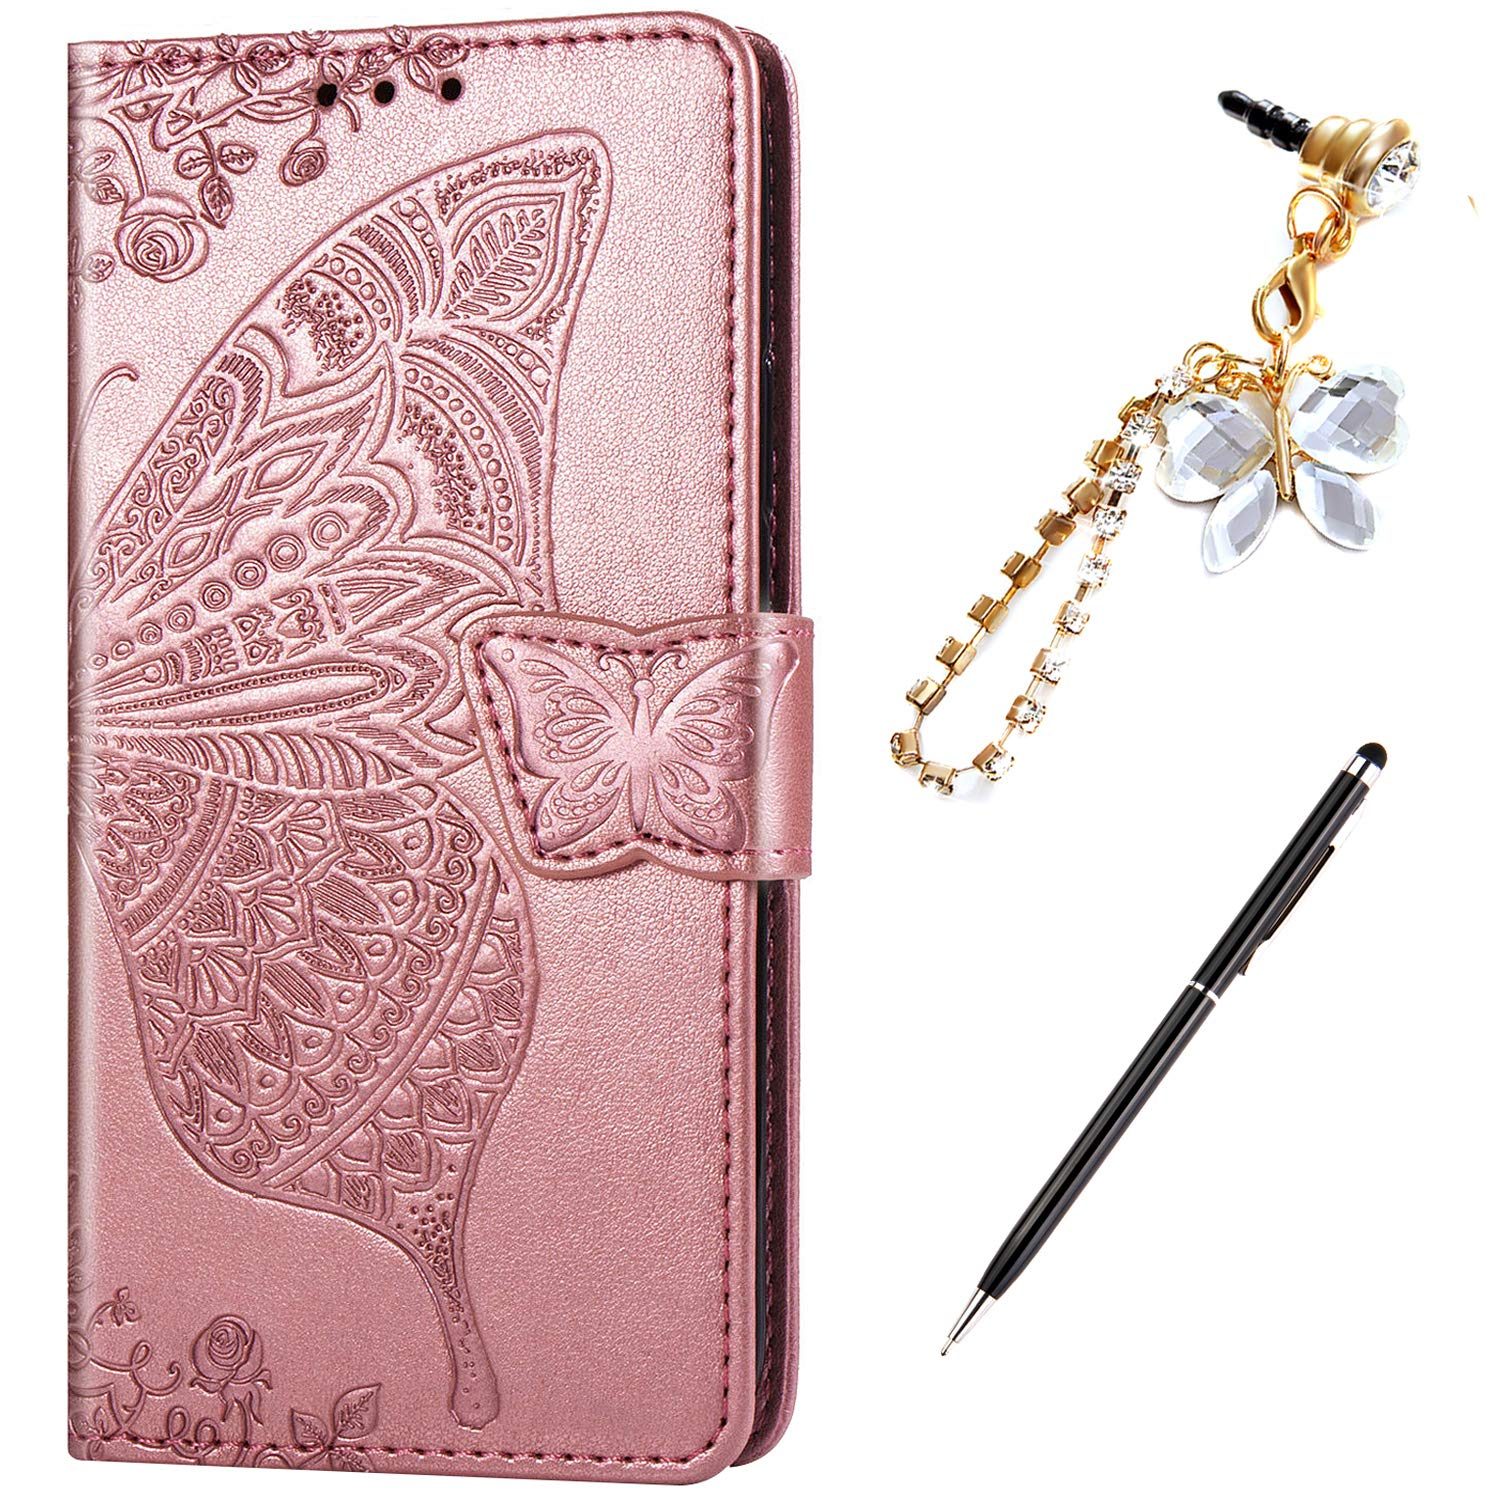 ikasus Case for Galaxy S9 Cover,Embossing Mandala Butterfly Rose Vine Flip Folio Wallet Case PU Leather Stand Card Slots Protective Case Cover + Dust Plug Stylus for Galaxy S9 Wallet Case,Rose Gold by ikasus